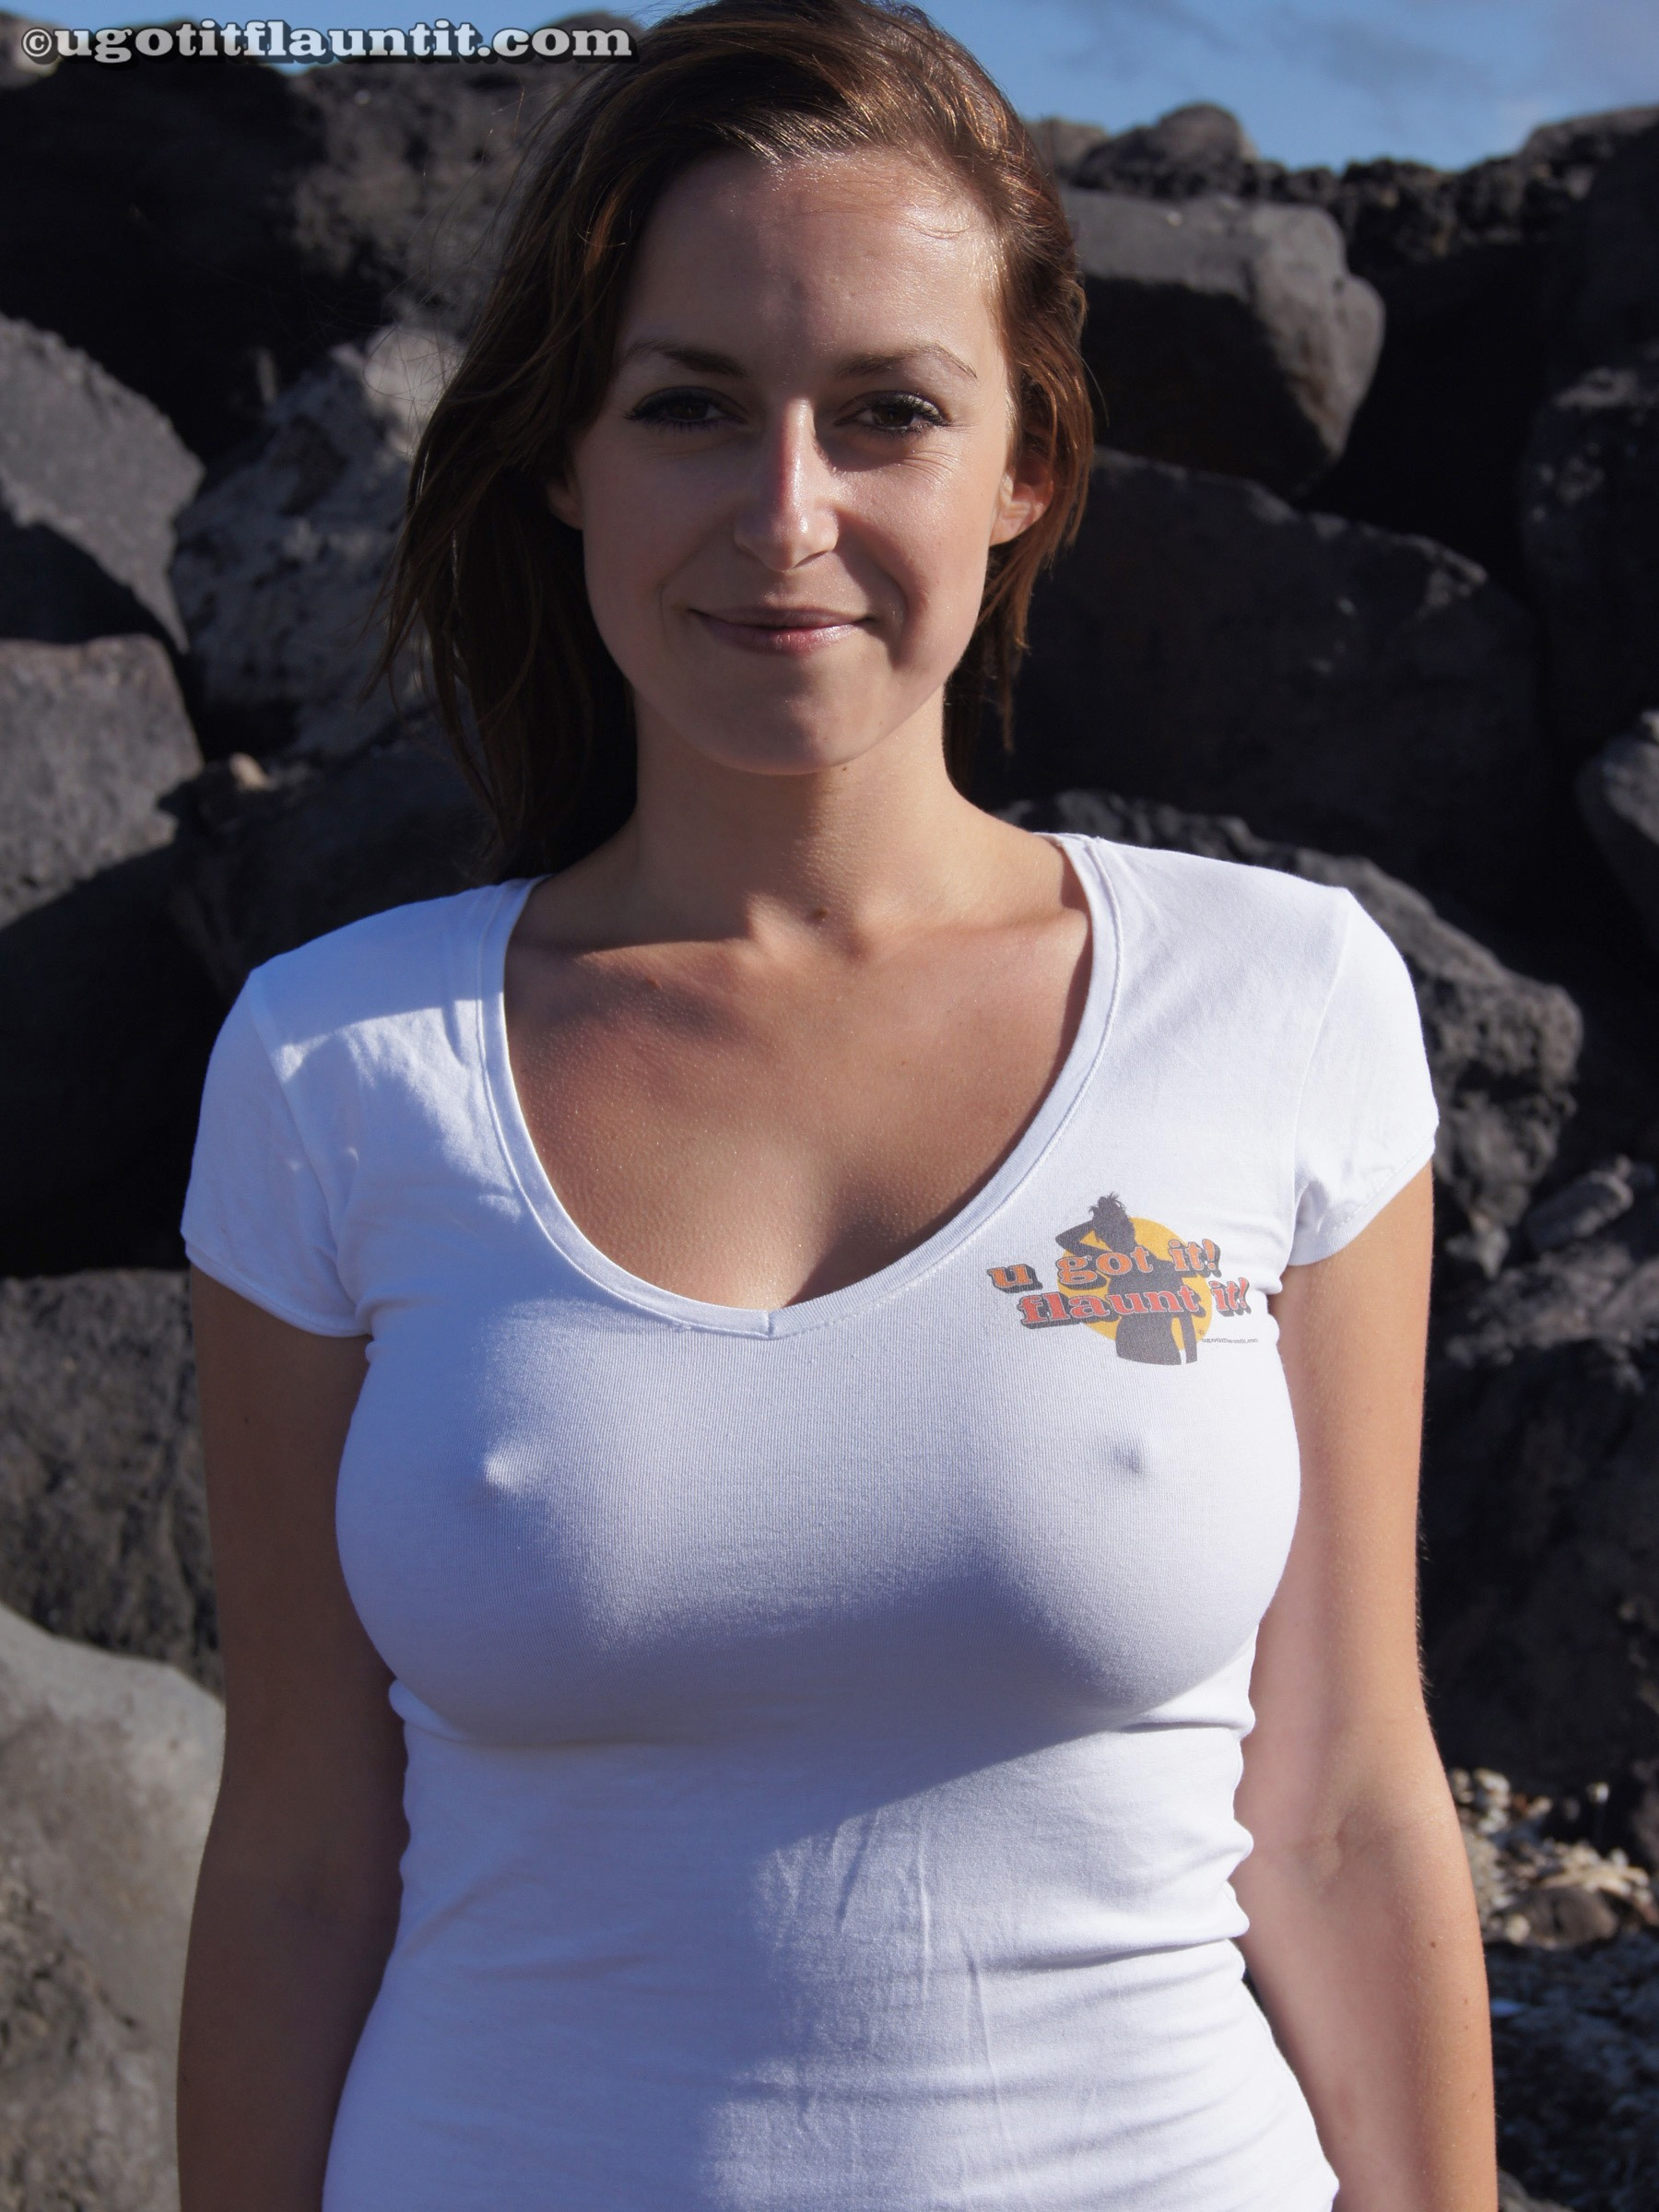 t boobs shirt wet in